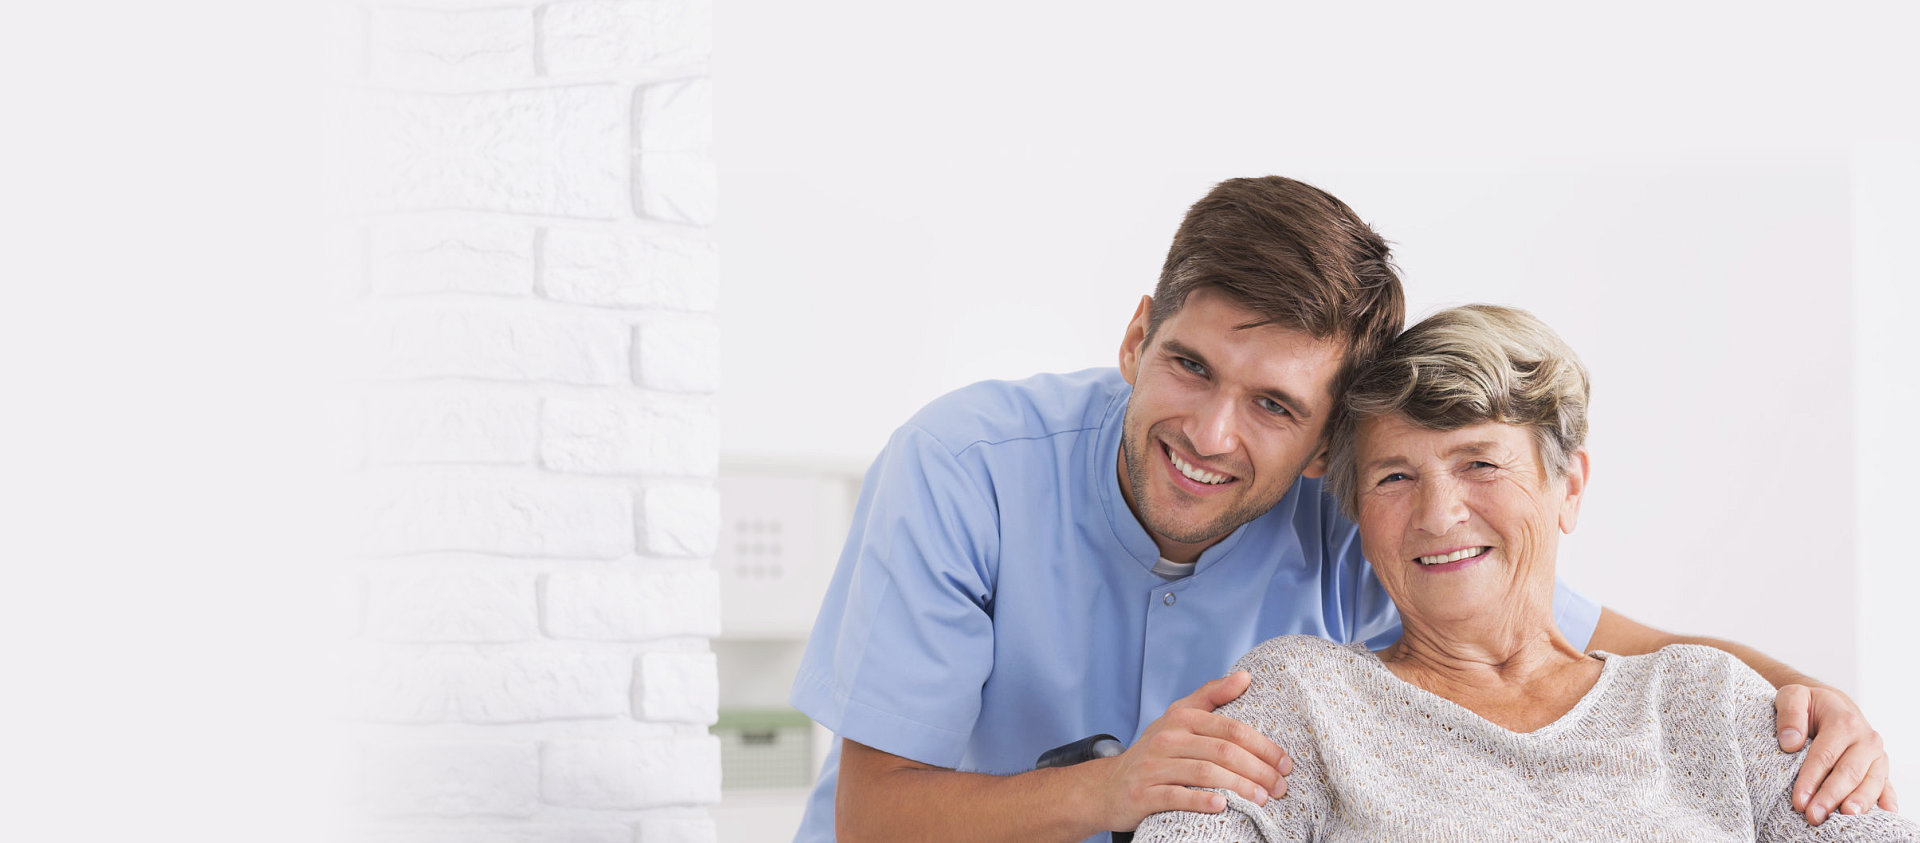 male caregiver and senior woman smiling